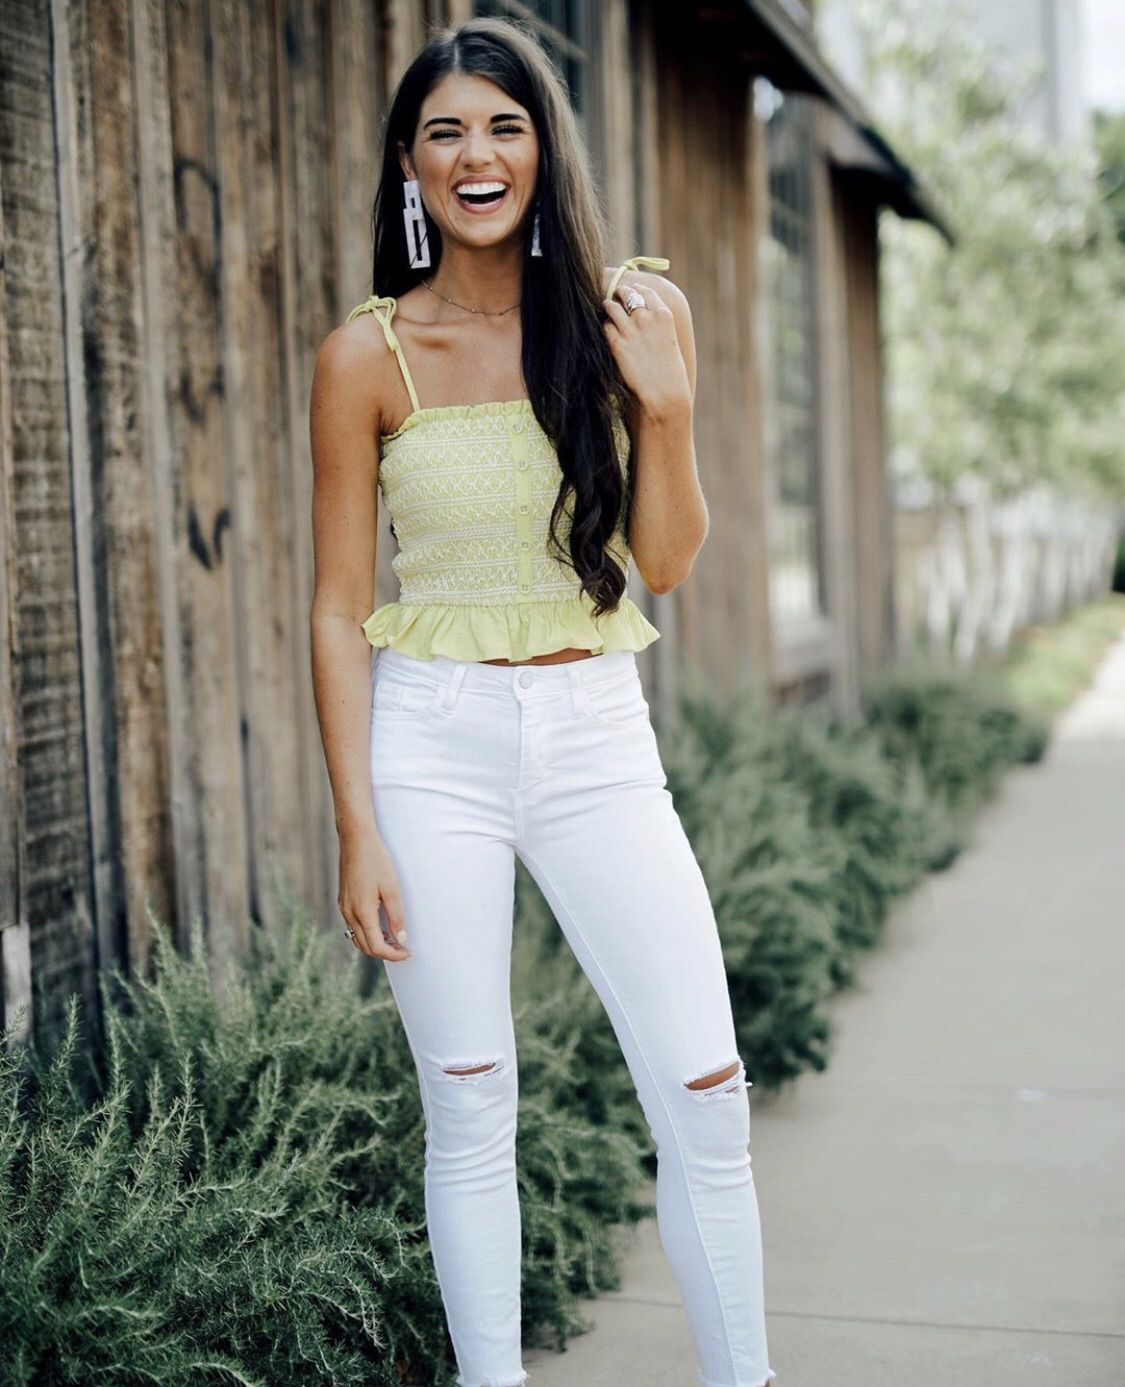 Shared by b a i l e y. Find images and videos about the bachelor, madison  prewett and bachelor 24 on We Heart It - the…   Cute outfits, Clothes,  Outfit inspirations